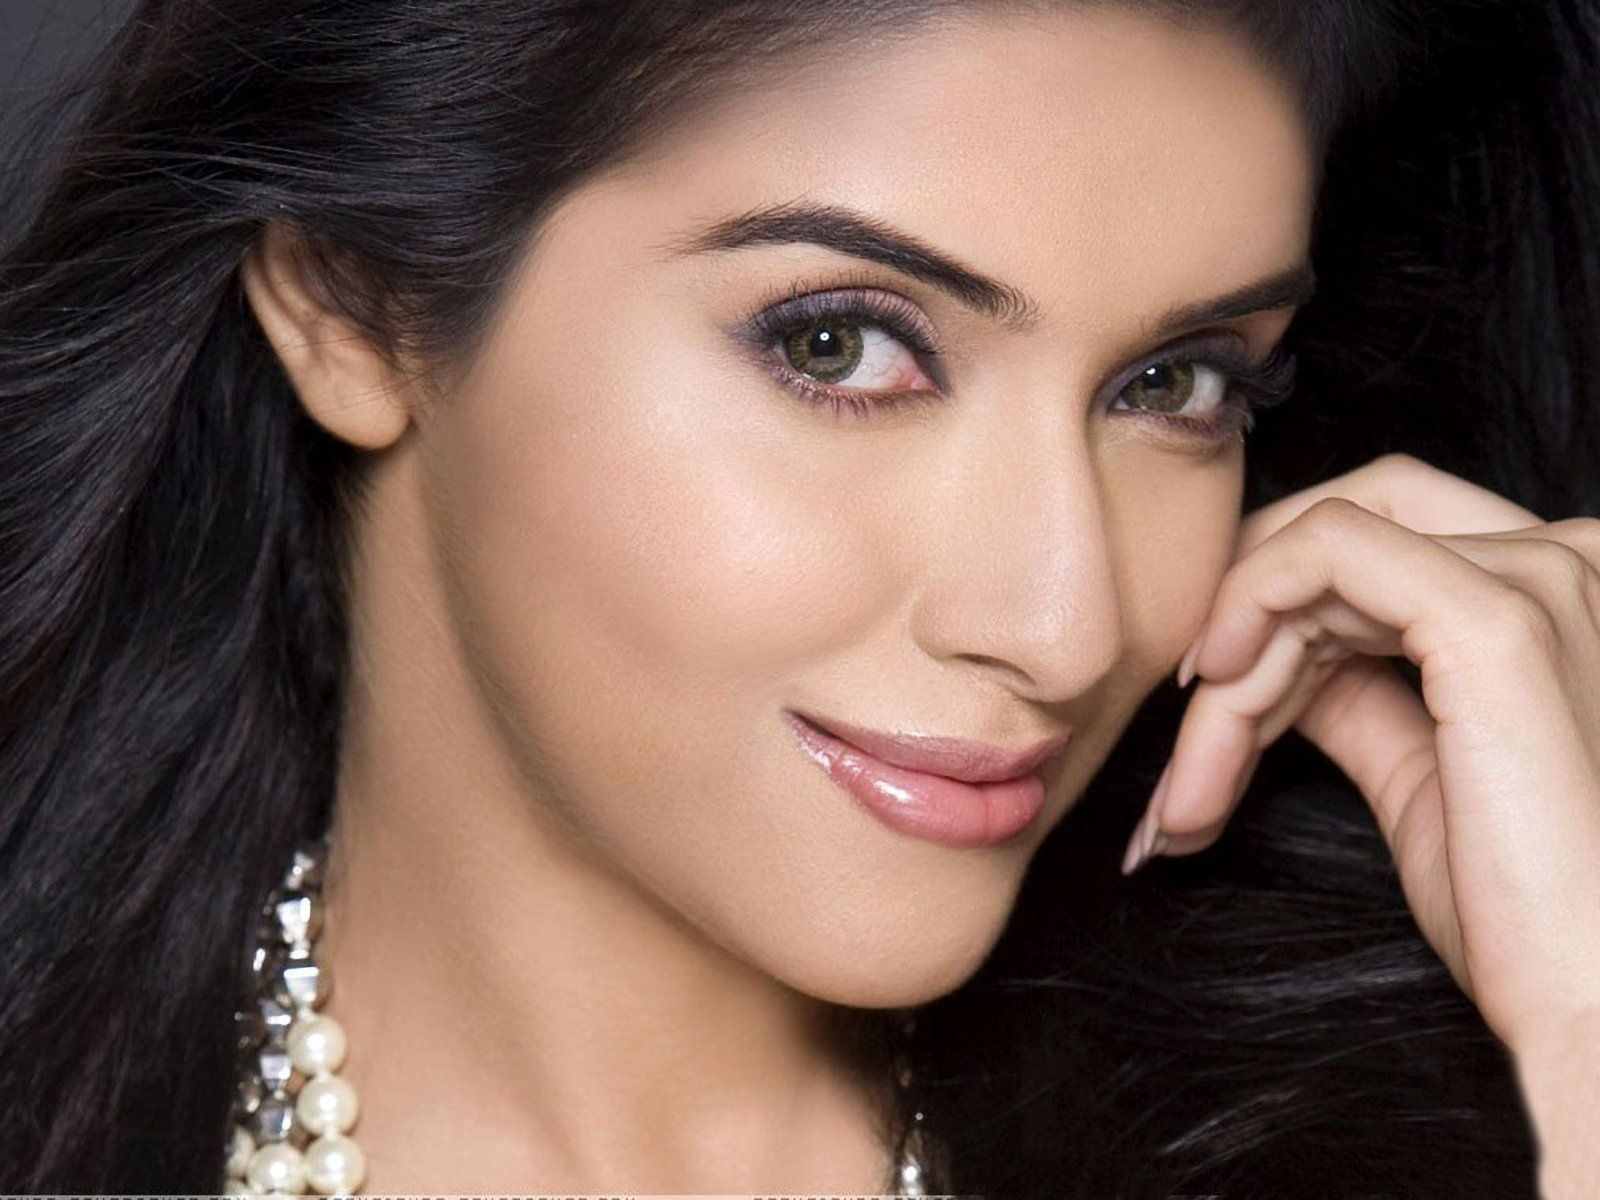 bollywood actress asin wallpapers hd wallpapers 1024×768 asin